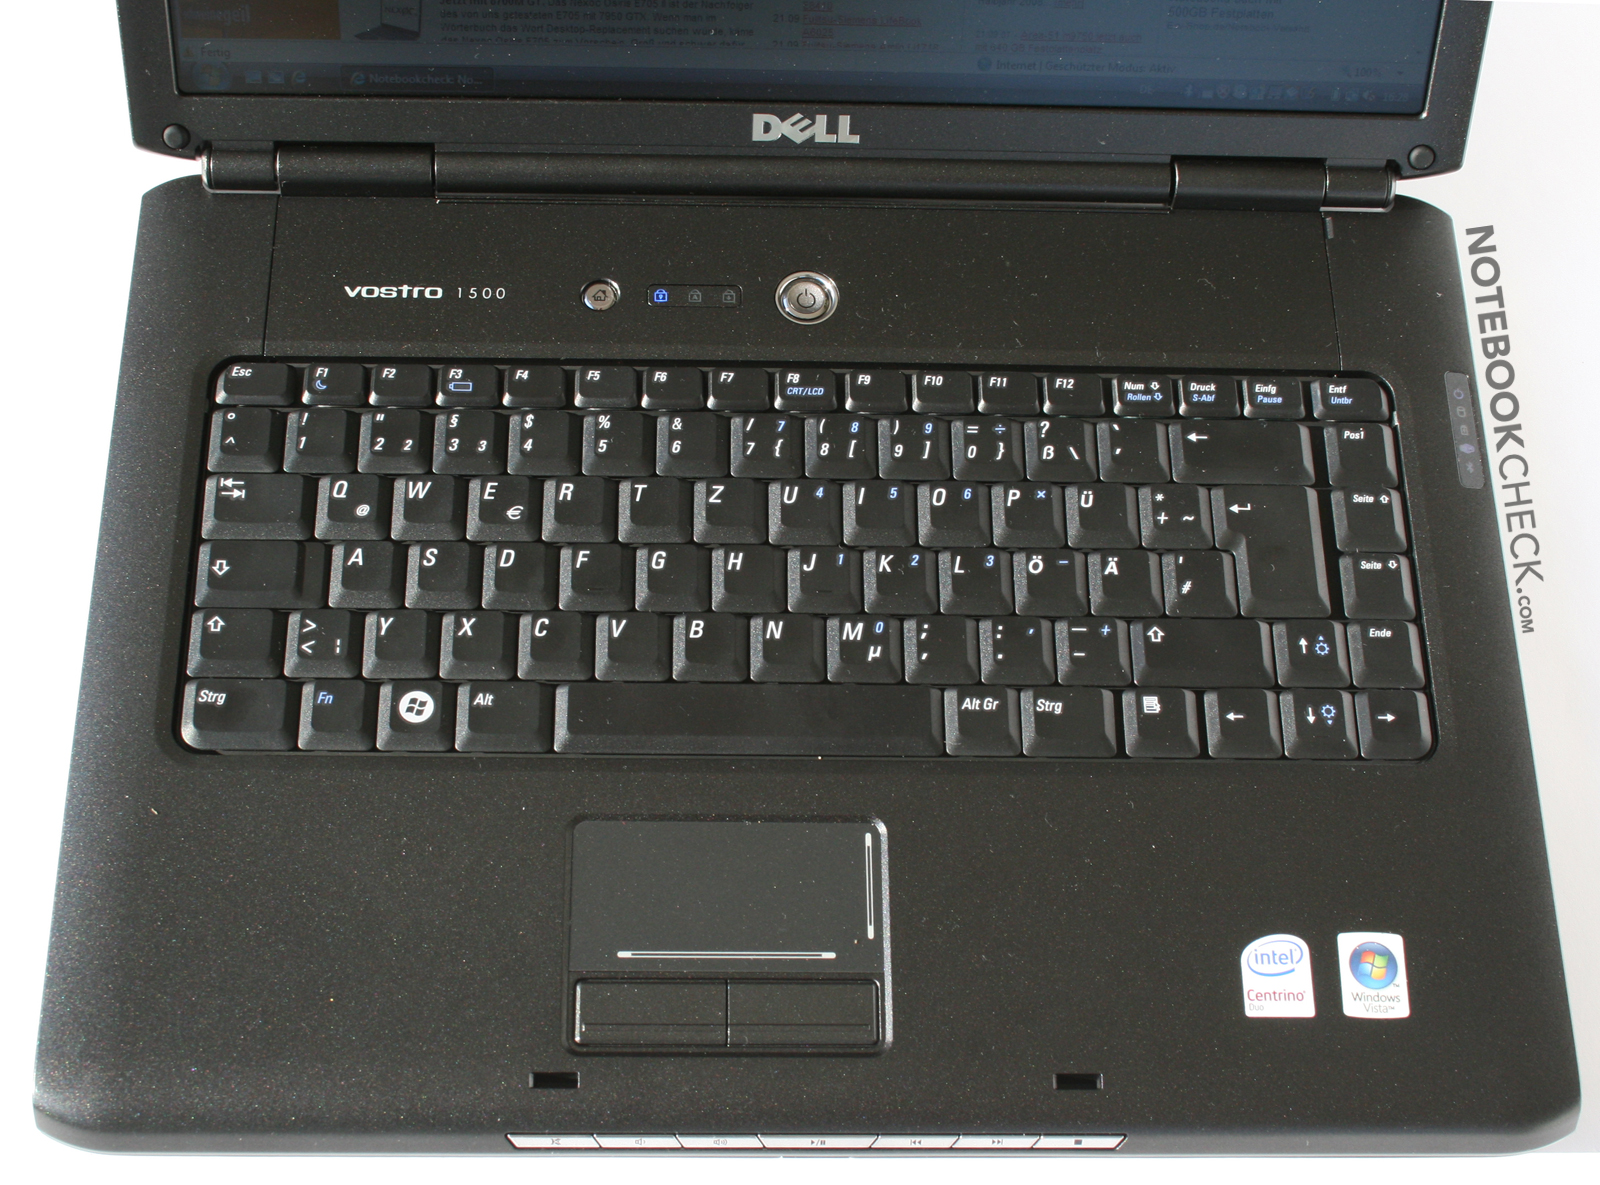 review dell vostro 1500 laptop notebookcheck net reviews rh notebookcheck net Vostro 1500 Bluetooth Driver dell vostro 1500 user guide manual